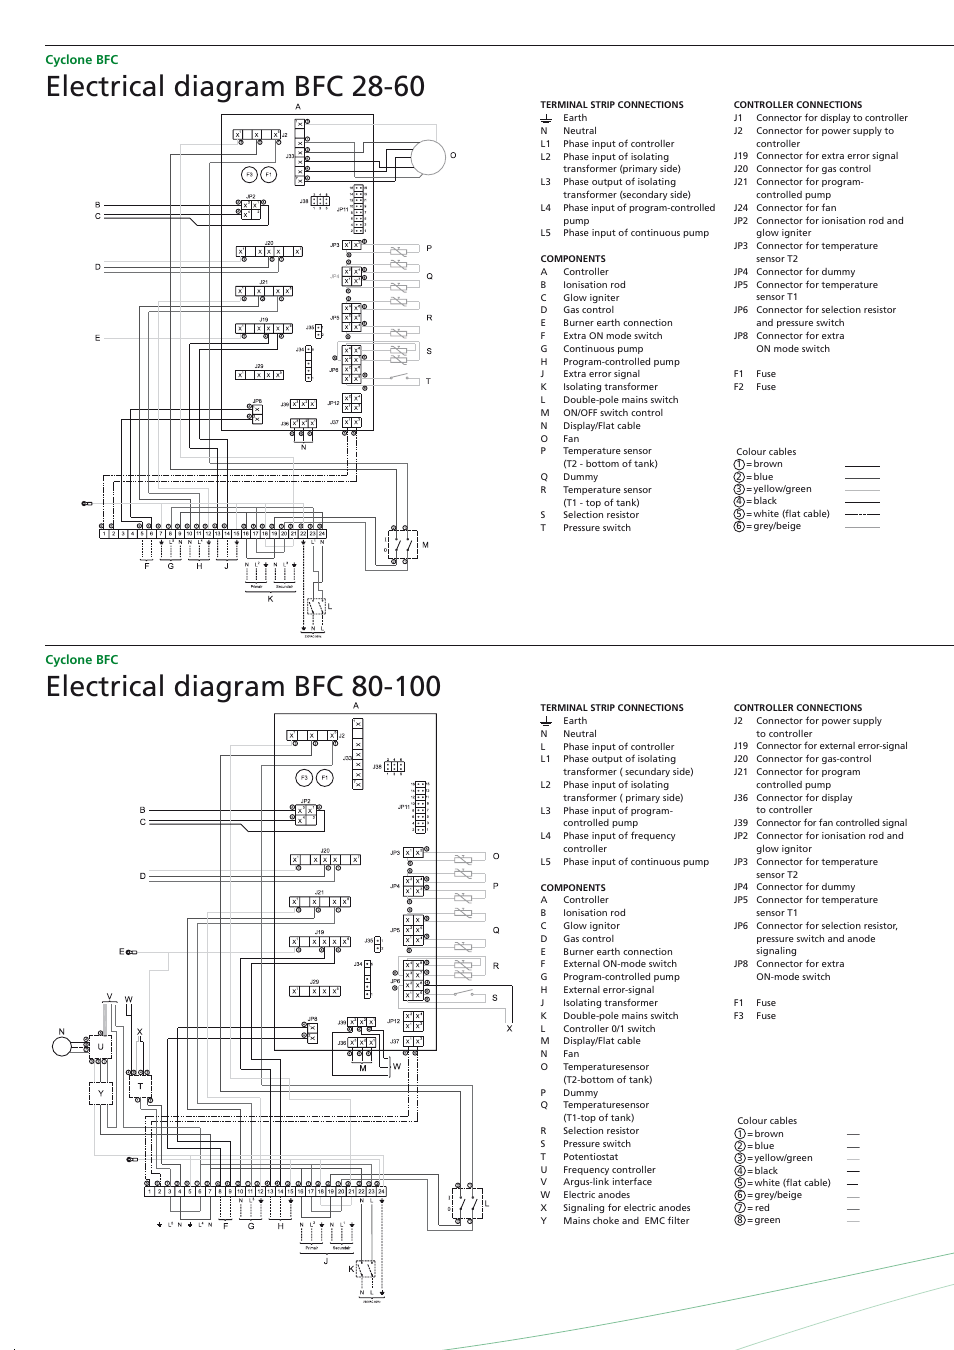 hight resolution of electrical diagram bfc 28 60 a o smith bfc 50 user manual page